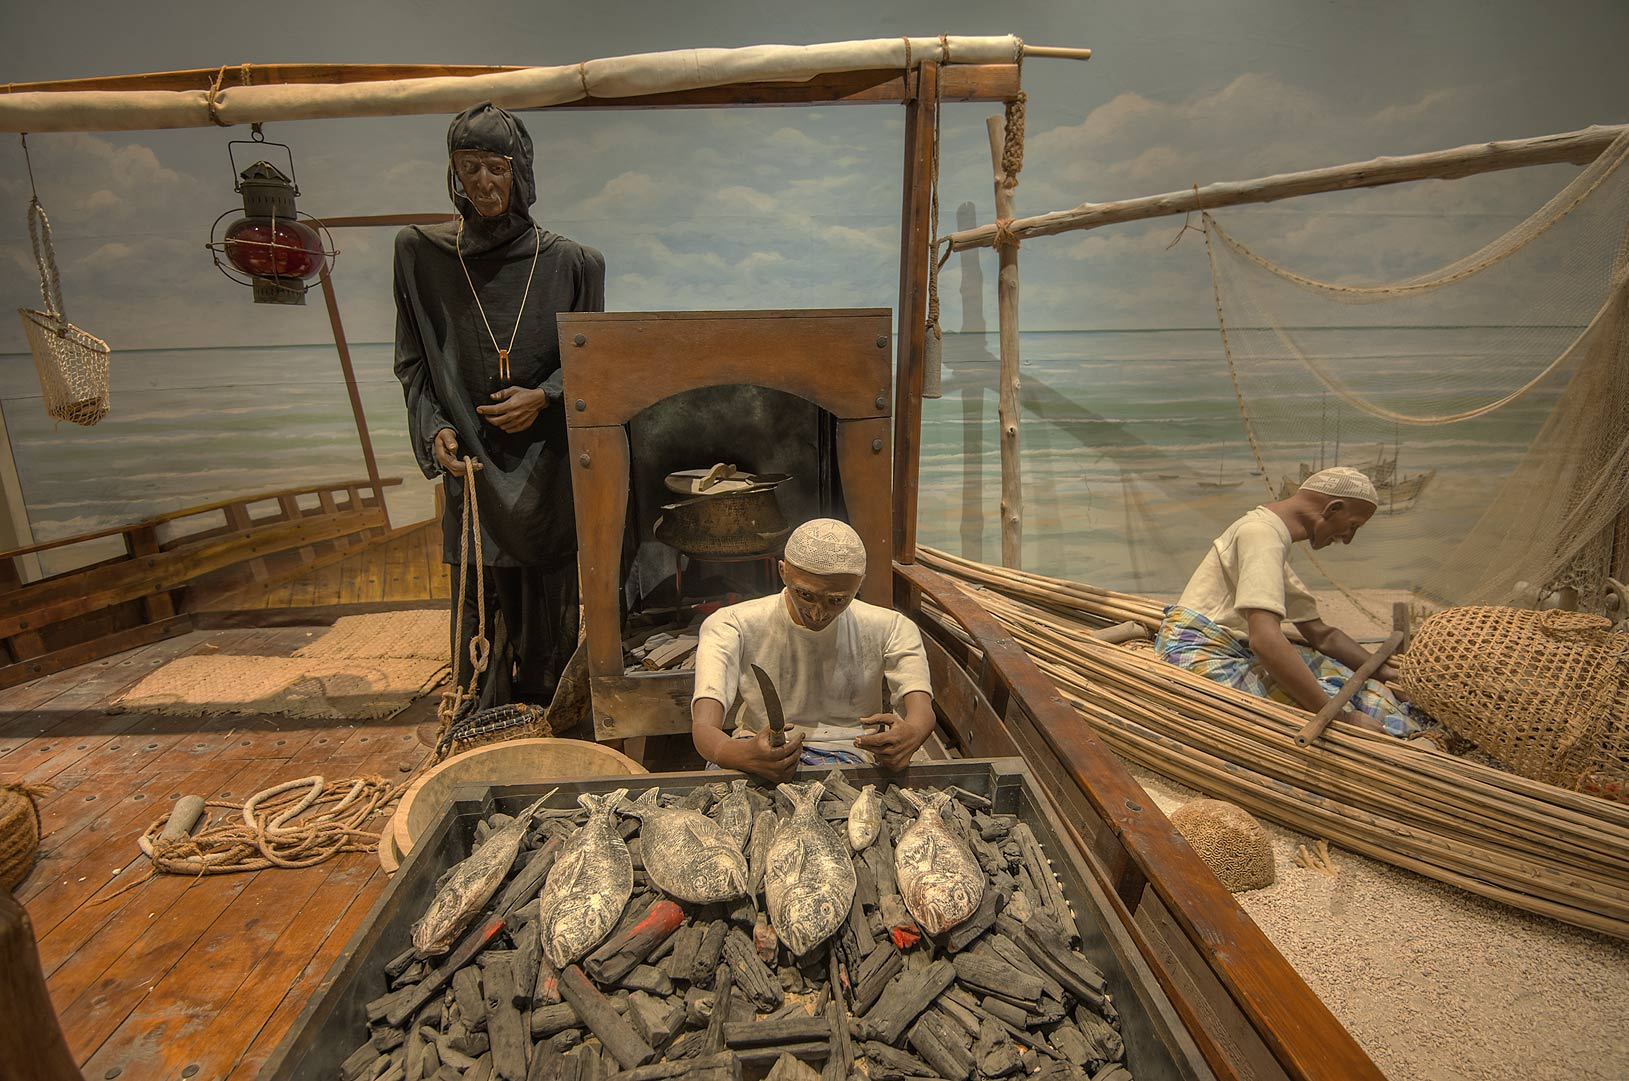 Exhibition of marine lifestyle in Bahrain National Museum. Manama, Bahrain